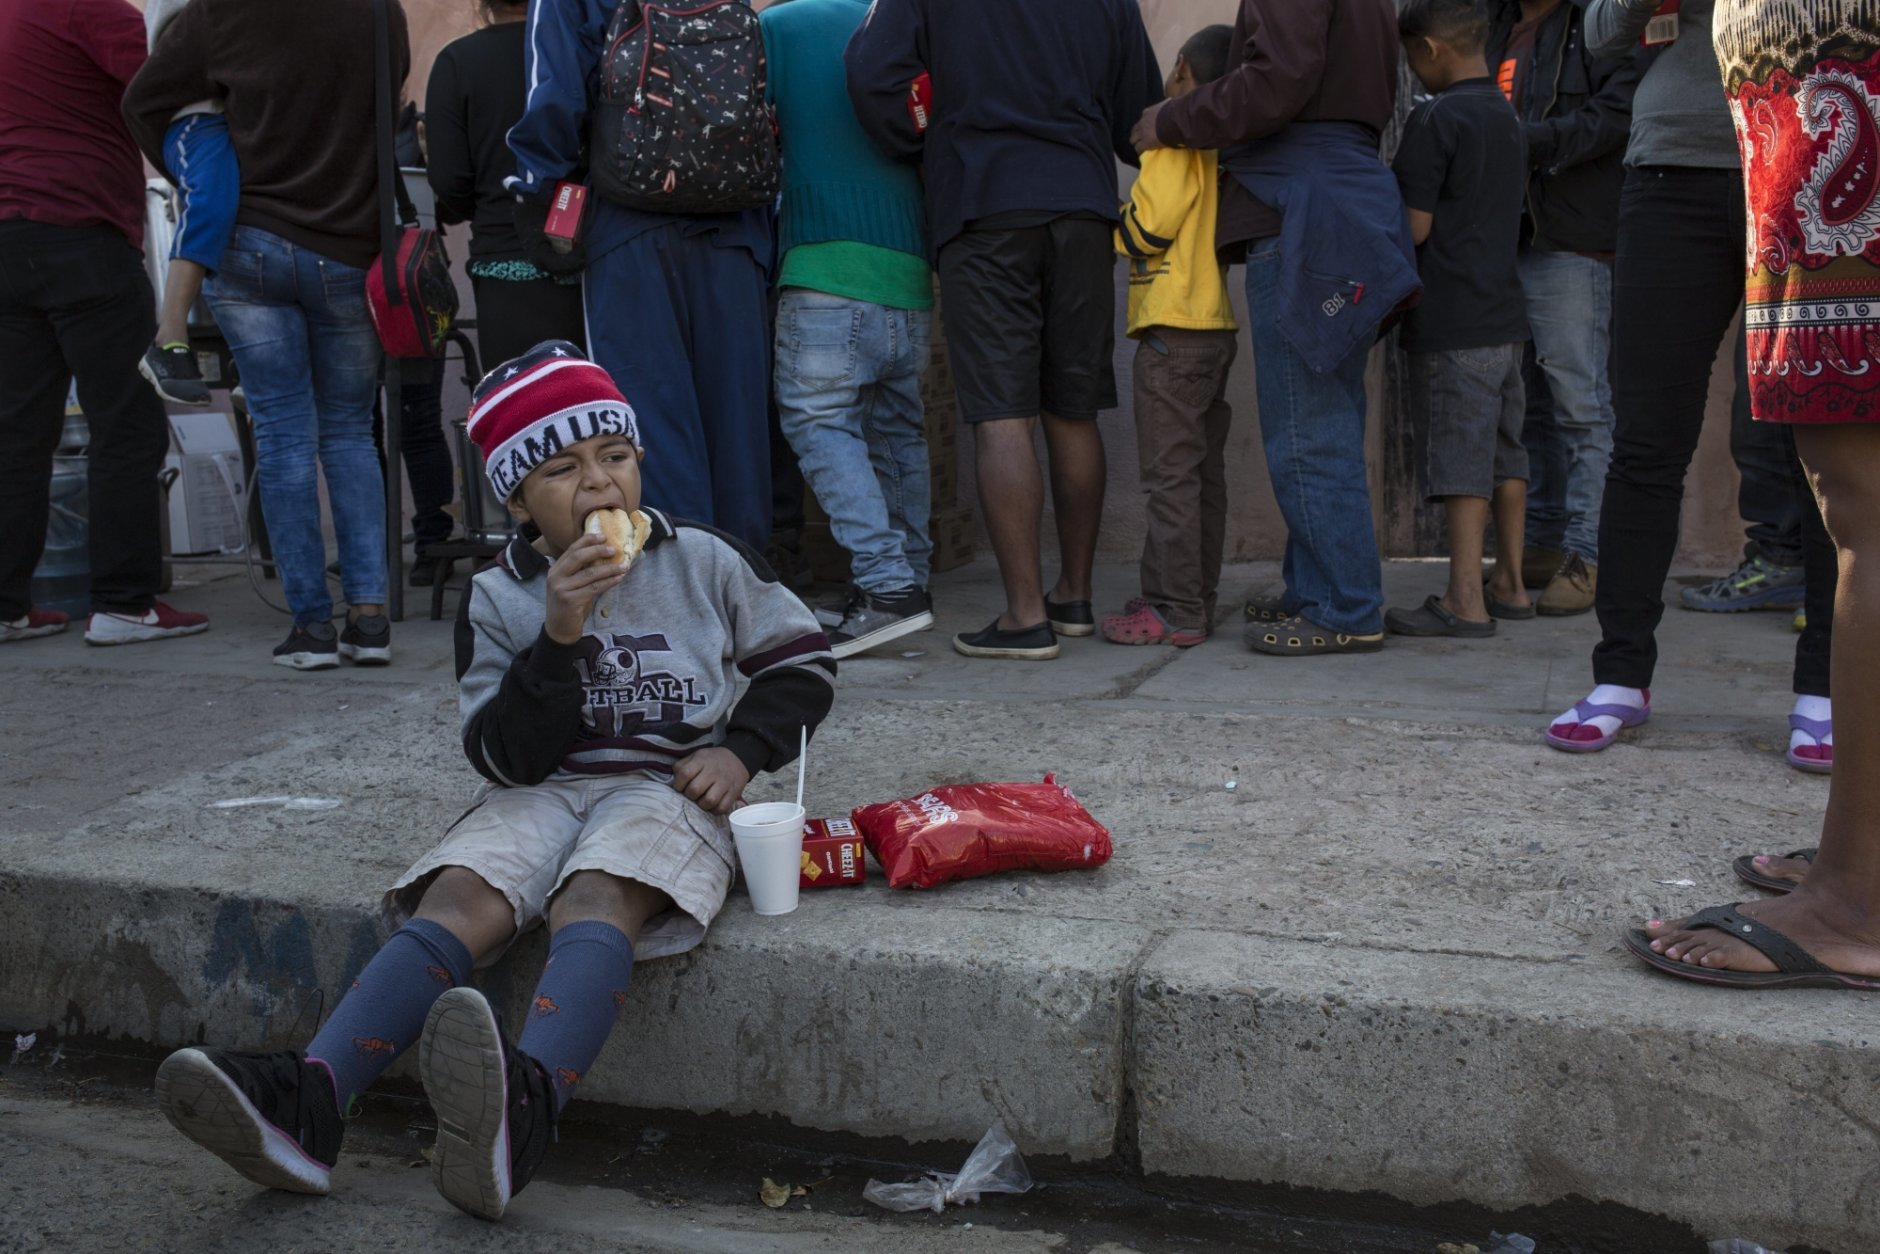 """A Central American migrant boy eats a donated breakfast at a temporary shelter in Tijuana, Mexico, early Saturday morning, Nov. 17, 2018. Many of the nearly 3,000 migrants have reached the border with California. The mayor has called the migrants' arrival an """"avalanche"""" that the city is ill-prepared to handle. (AP Photo/Rodrigo Abd)"""